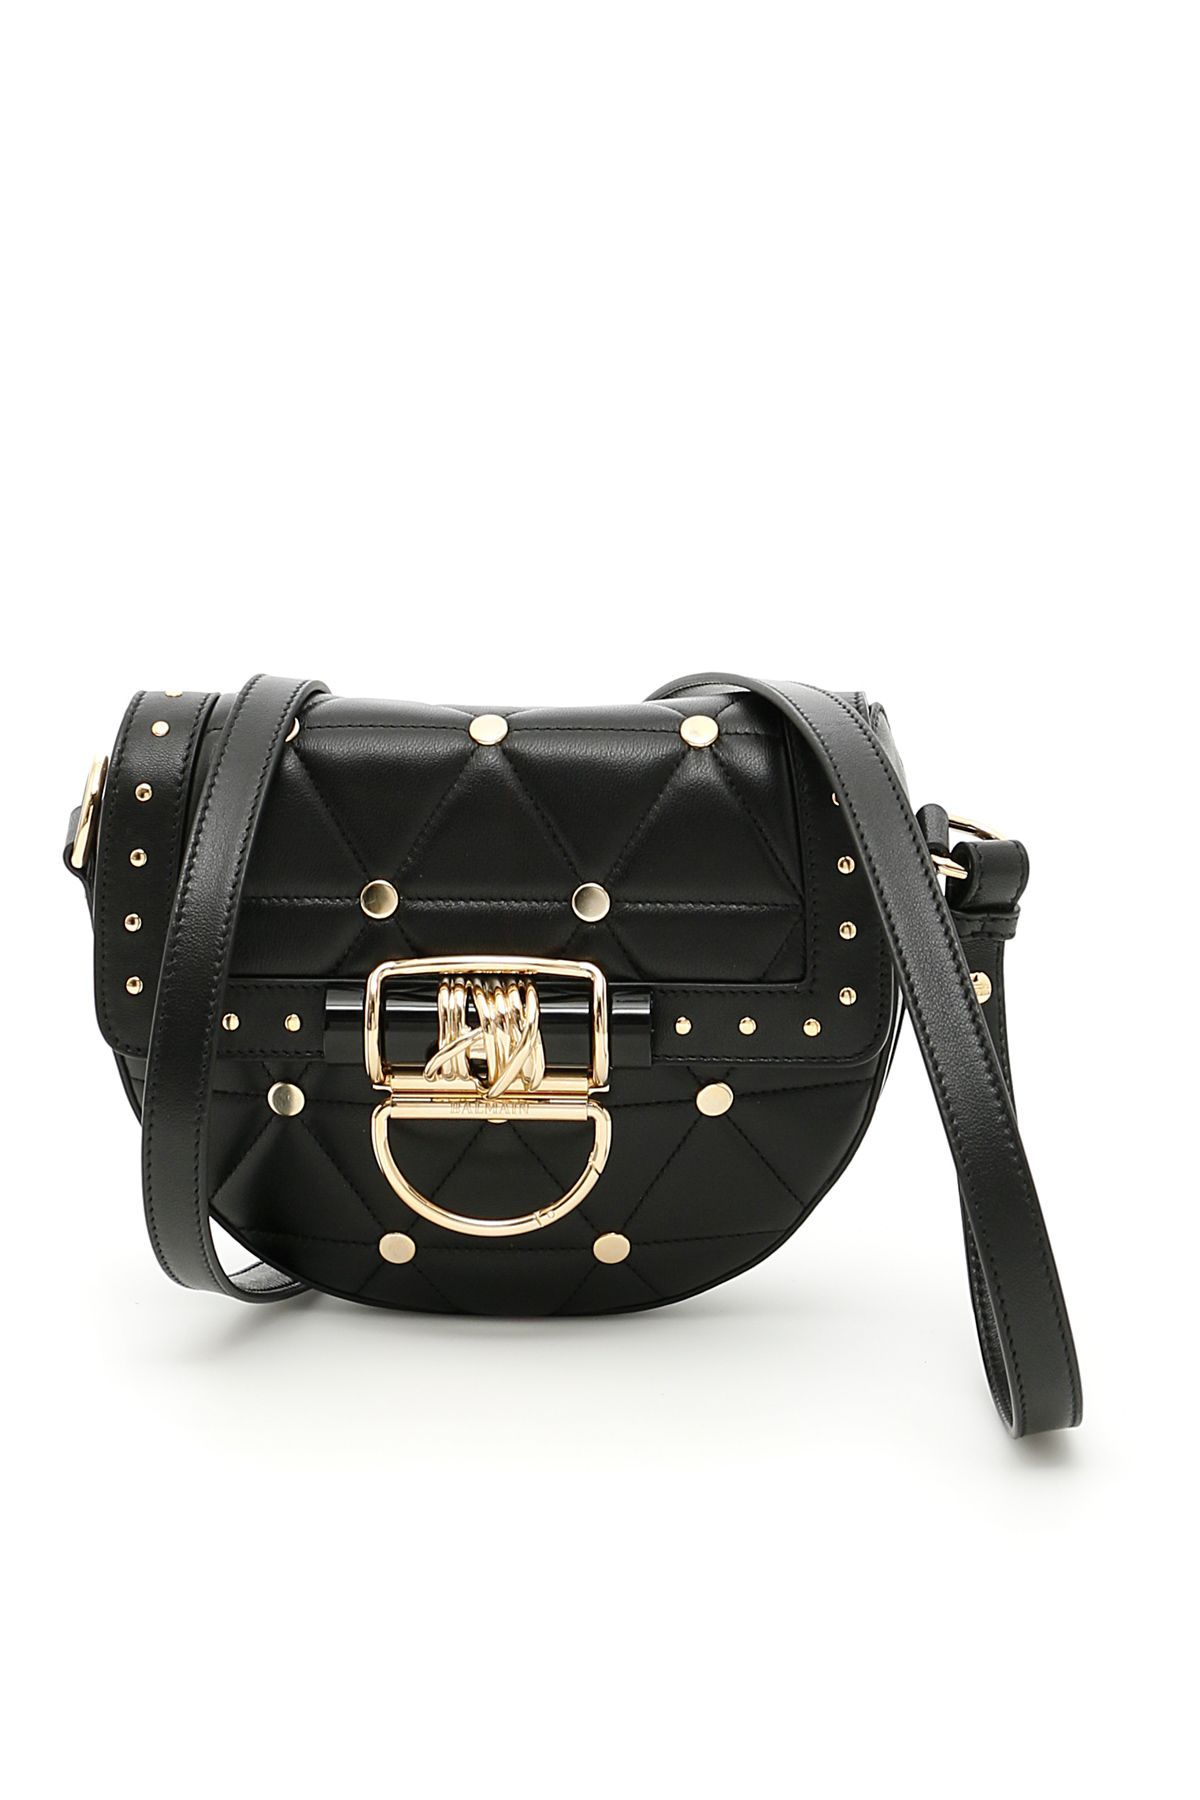 ffb4c502633d BALMAIN STUDDED BAG.  balmain  bags  shoulder bags  leather  lining ...